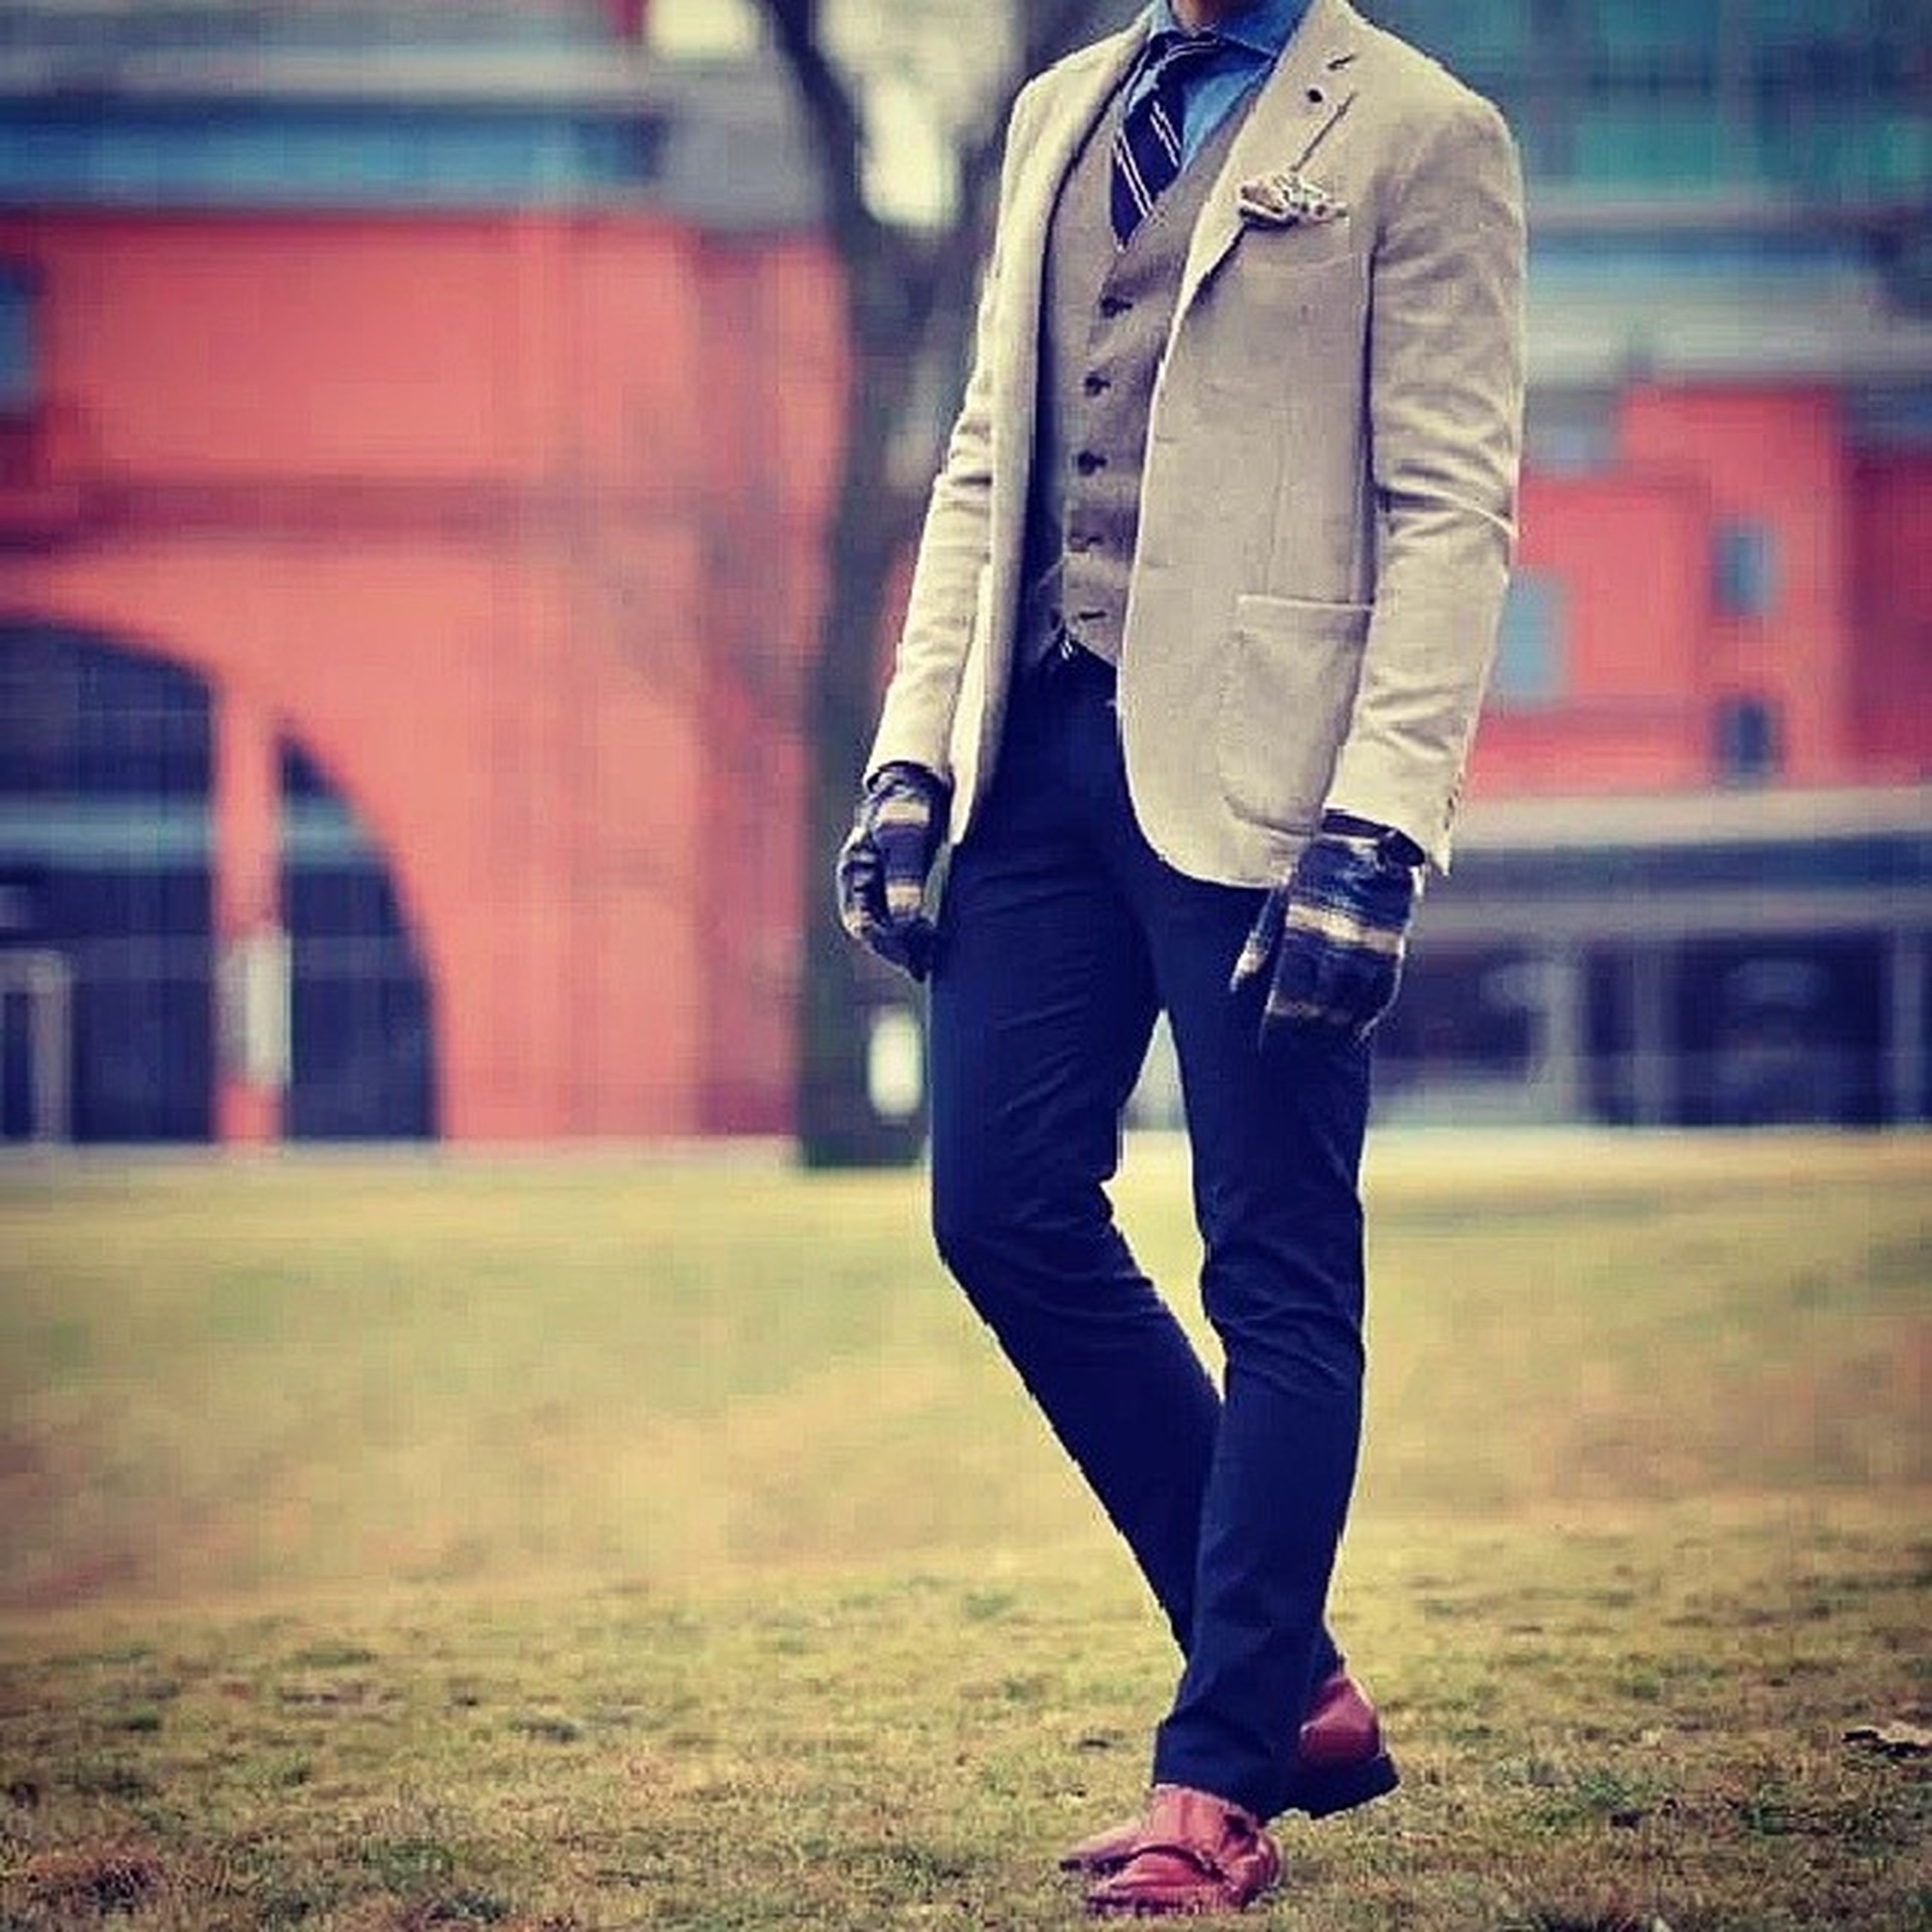 lifestyles, casual clothing, focus on foreground, standing, leisure activity, grass, full length, rear view, men, jacket, walking, holding, selective focus, day, boys, front view, outdoors, field